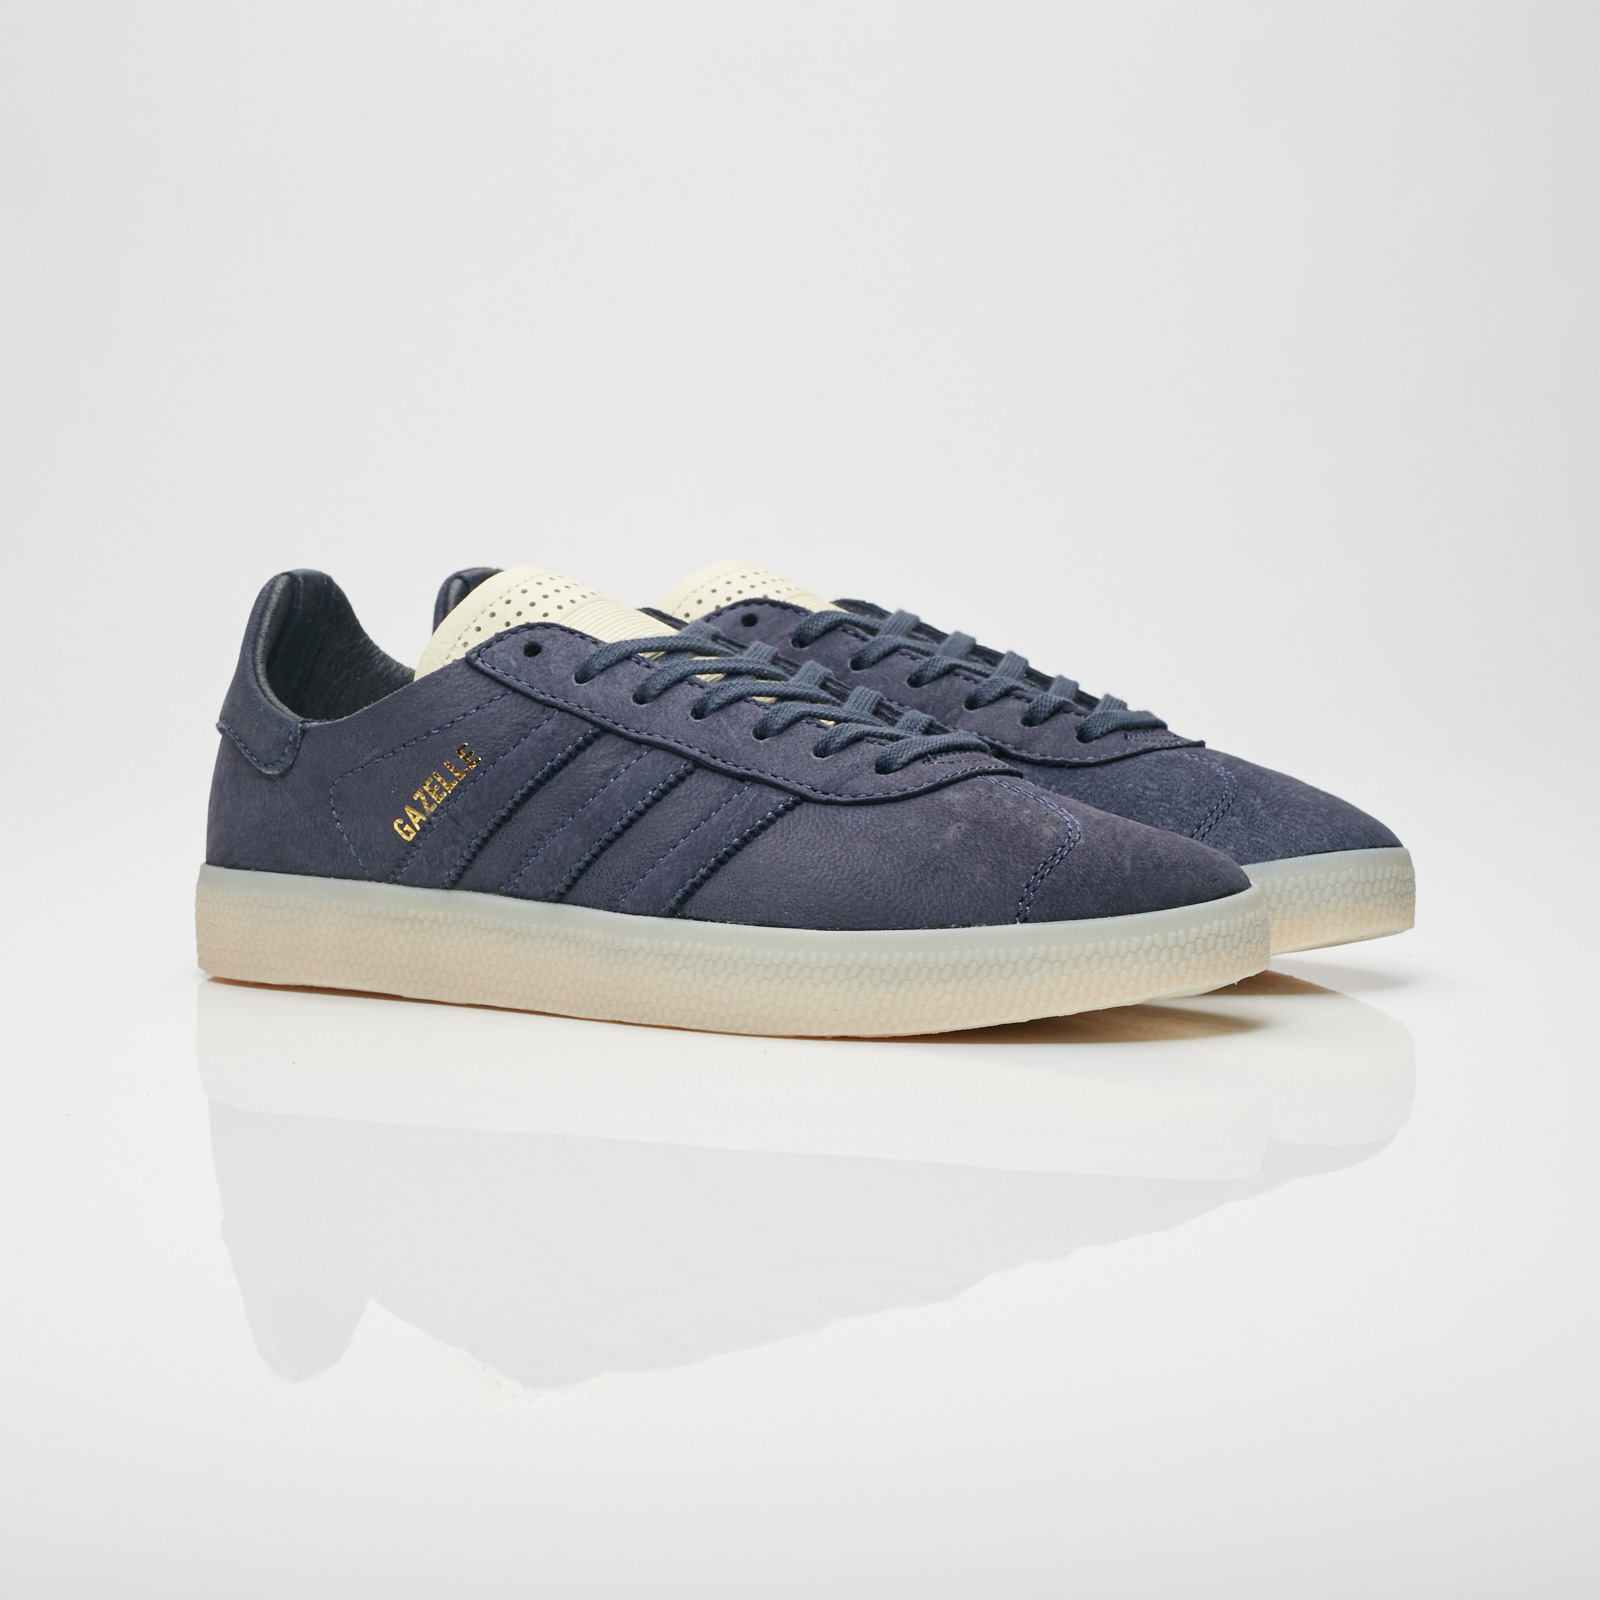 huge selection of c7361 4924c adidas Gazelle Crafted - Bw1250 - Sneakersnstuff | sneakers ...